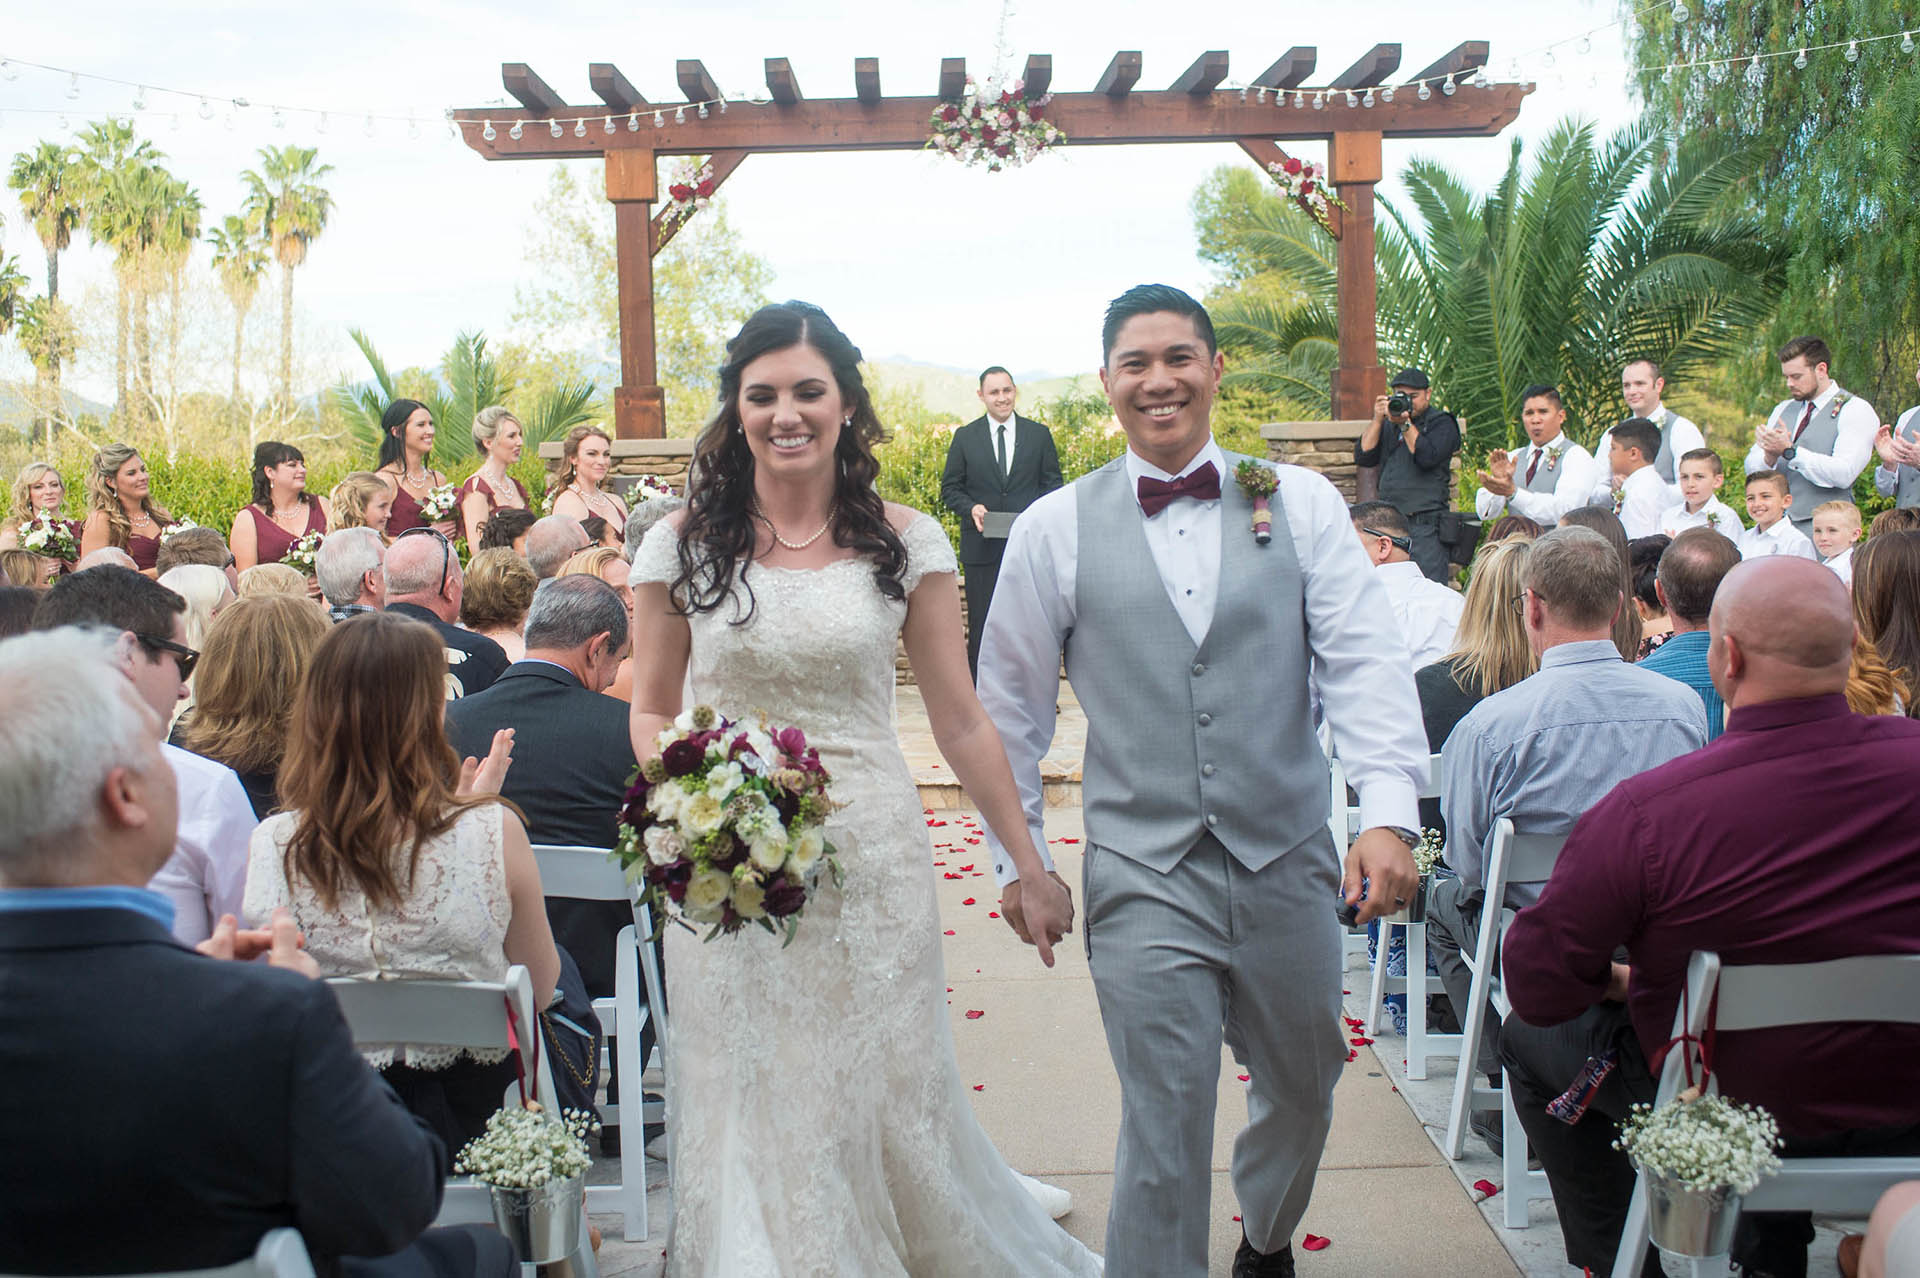 Host your ceremony on the patio with an elegantly rustic arbor overlooking the greens or by the tranquil fountain for a more intimate feel.